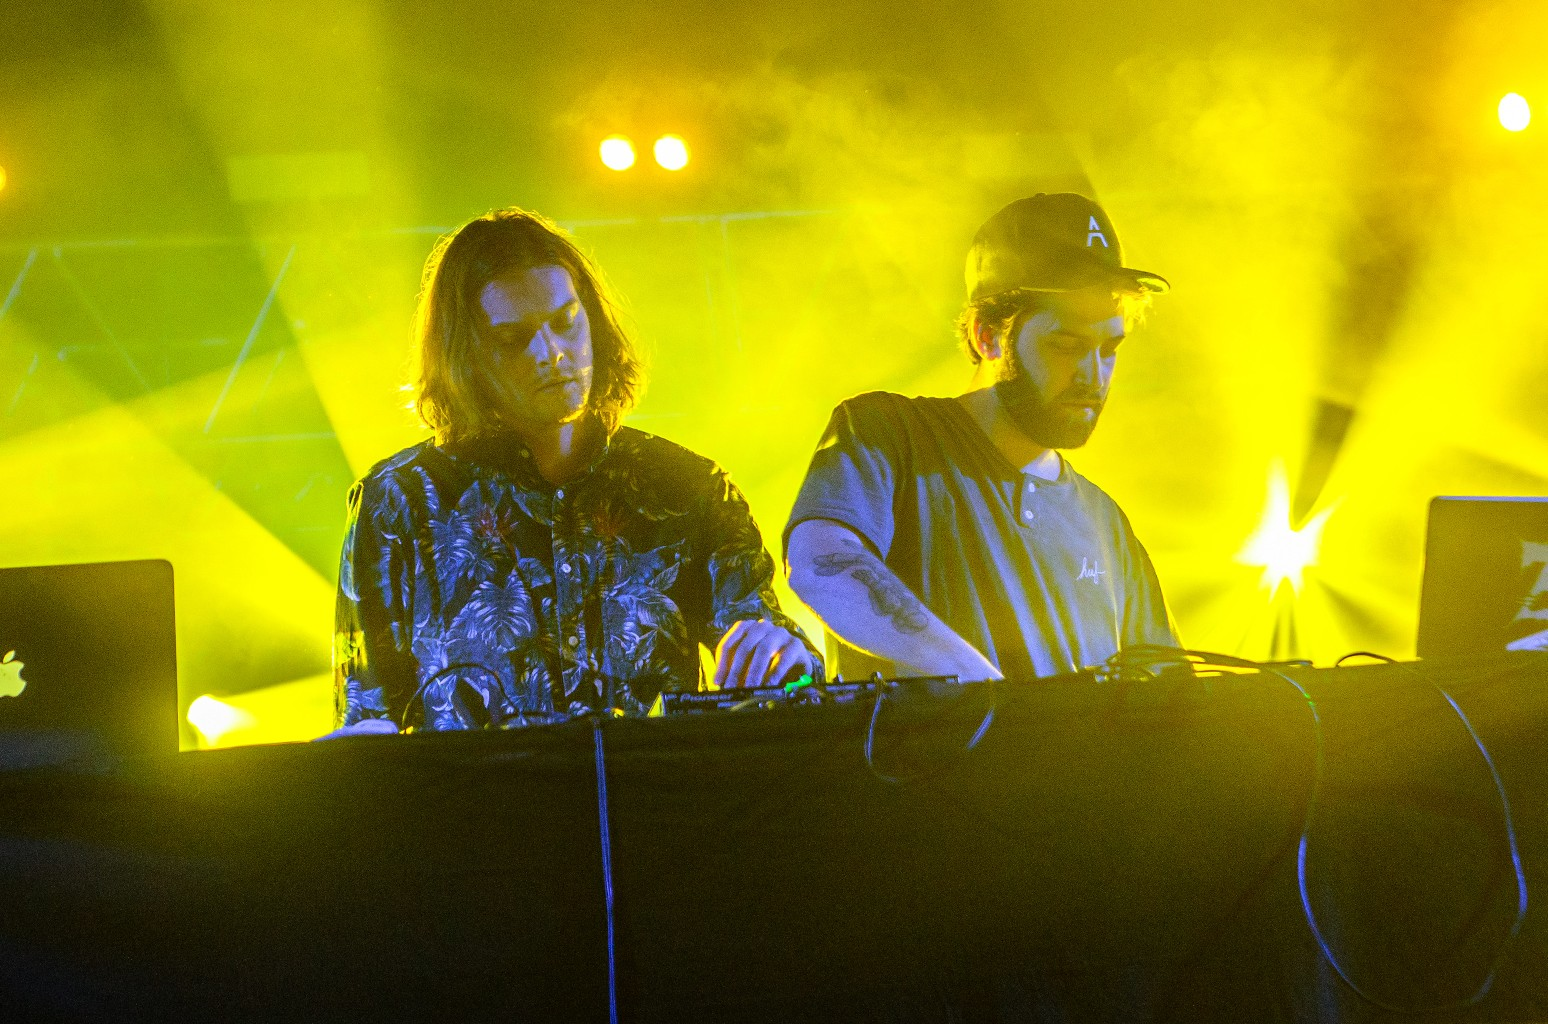 Zeds Dead perform during the Bonnaroo Music & Arts Festival